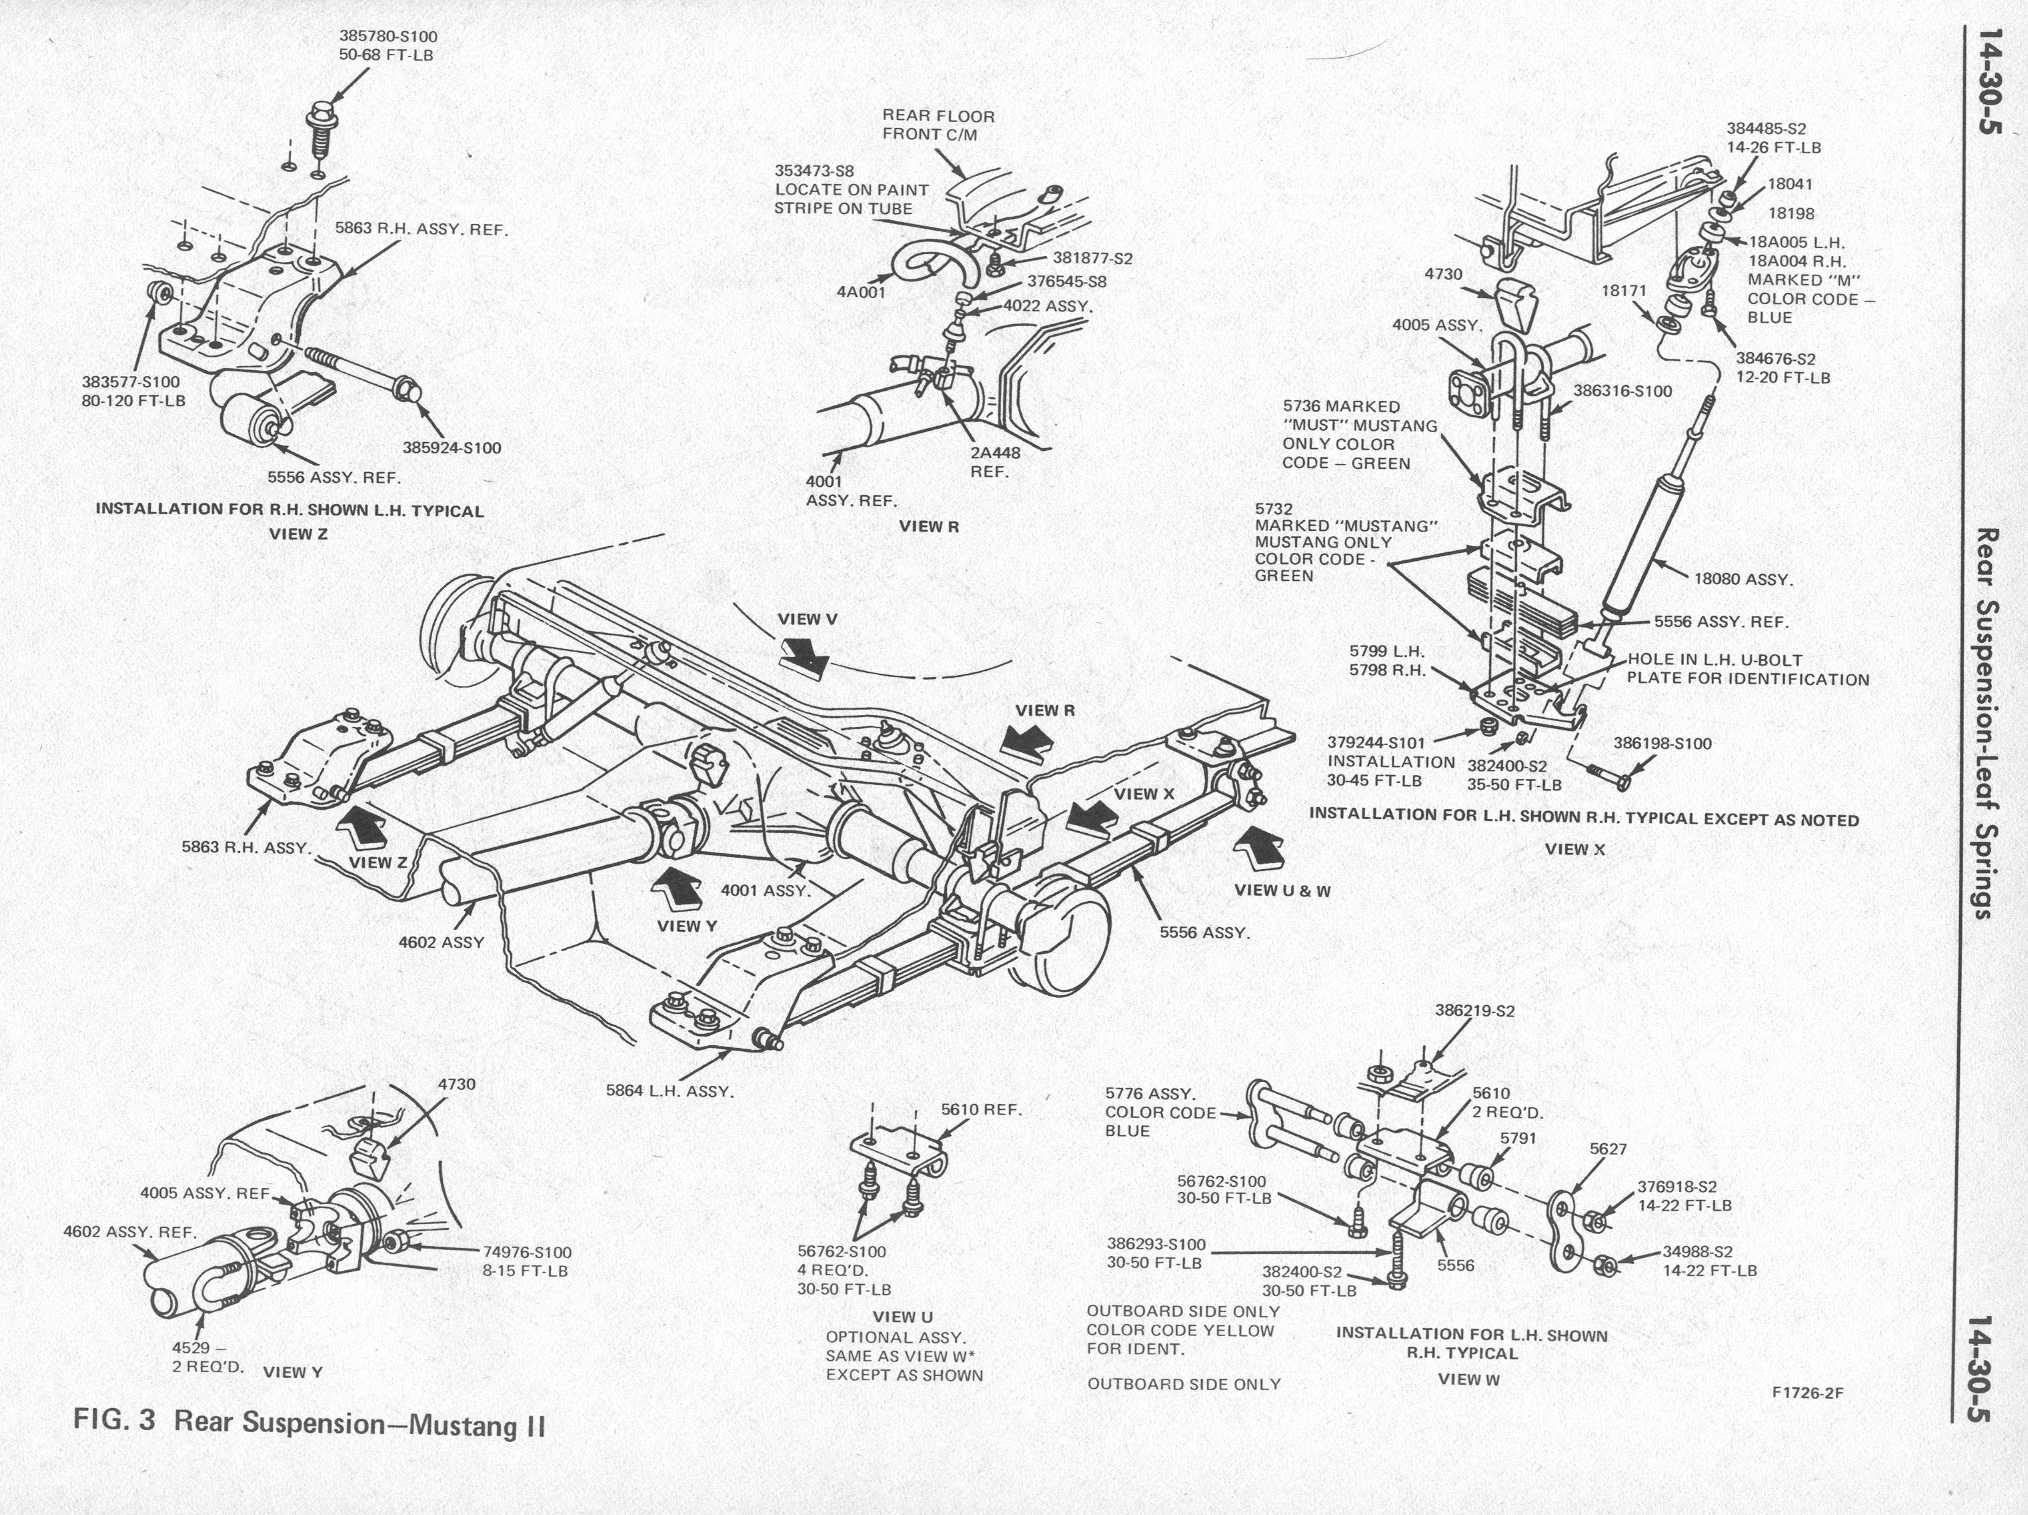 bx2200 parts diagram furthermore ford dana 44 front axle exploded